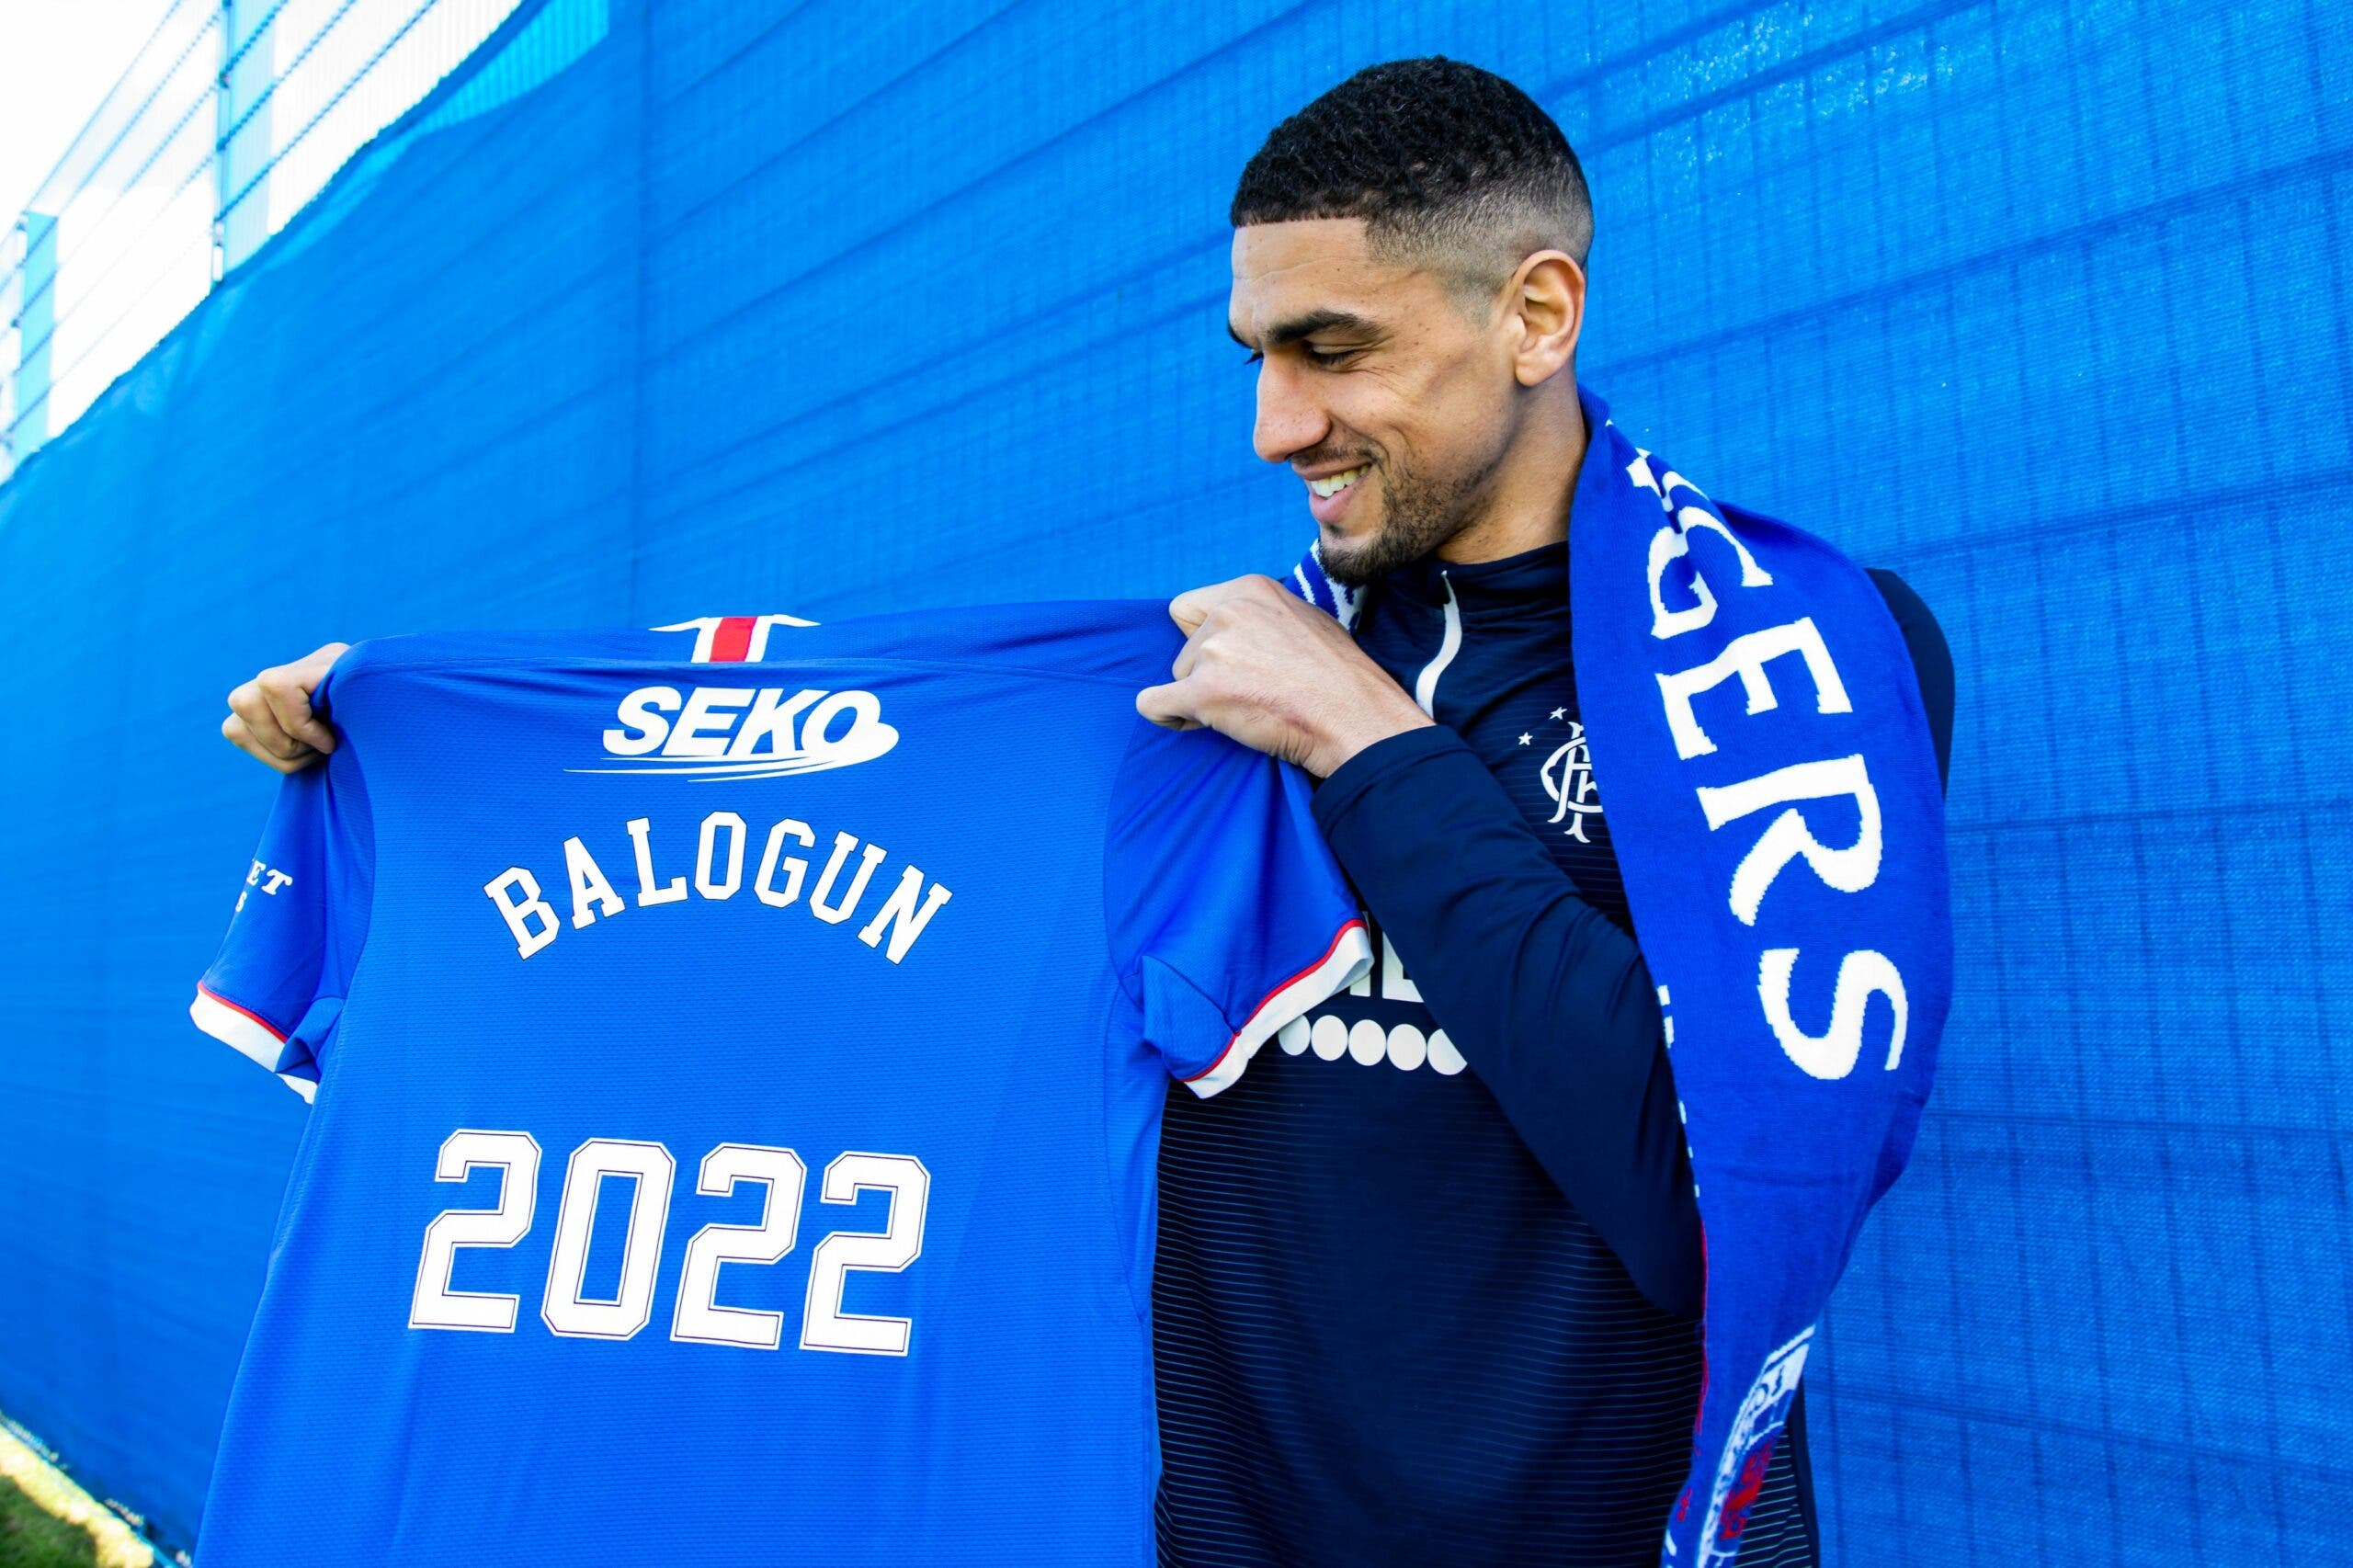 Balogun proud to sign contract extension with Rangers